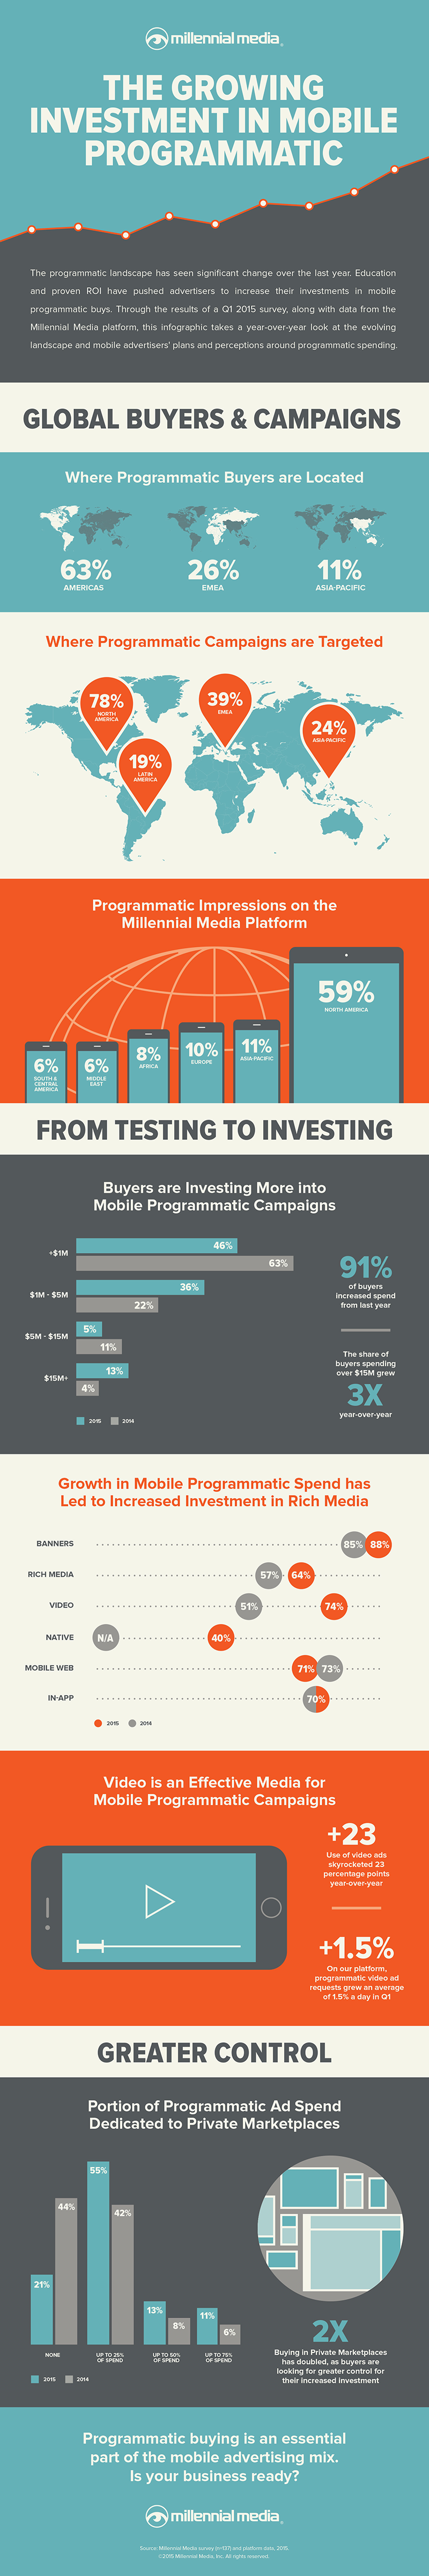 Infographic: The Growing Investment in Mobile Programmatic